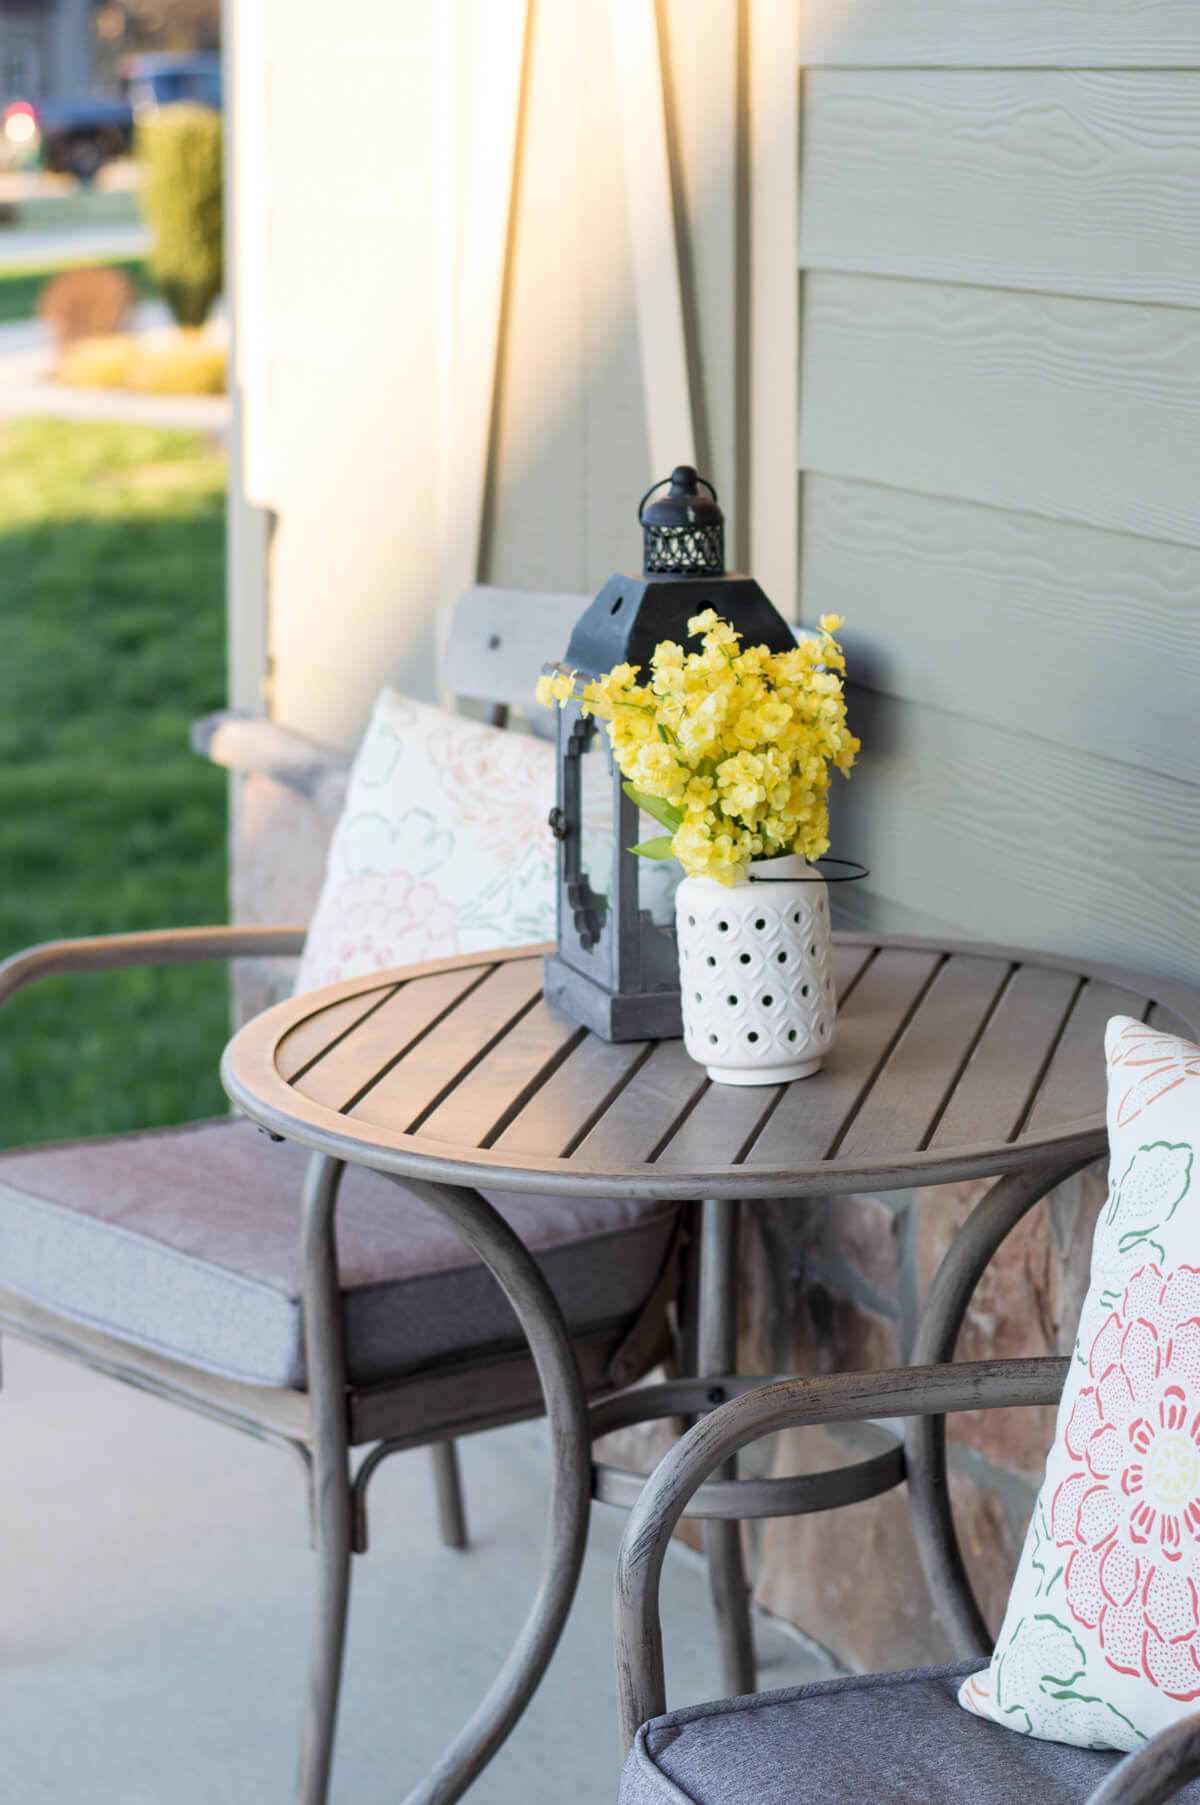 This cute ceramic rain boot was a spur of the moment purchase from Walmart. & 5 Minute DIY Spring Flower Door Basket Video - The Home I Create